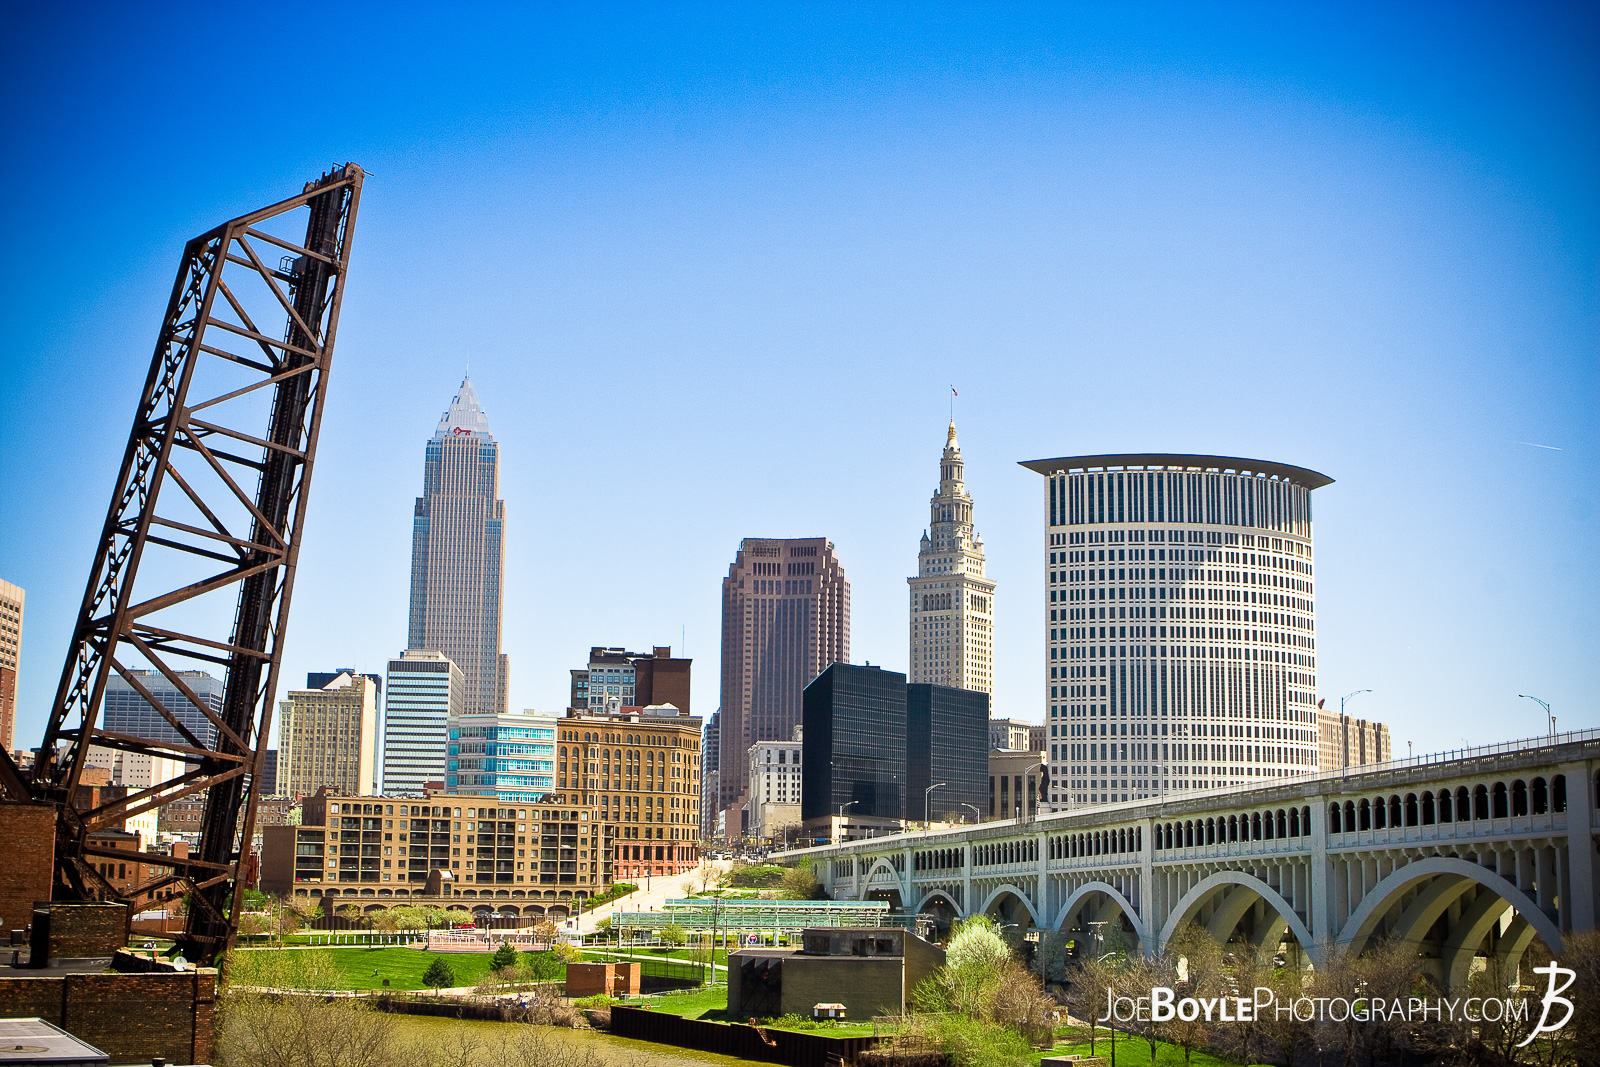 A photo of the Cleveland Skyline. From left to right the 4 tallest buildings are The Key Tower, The BP-Huntington Building, The Terminal Tower and the Federal Courthouse.